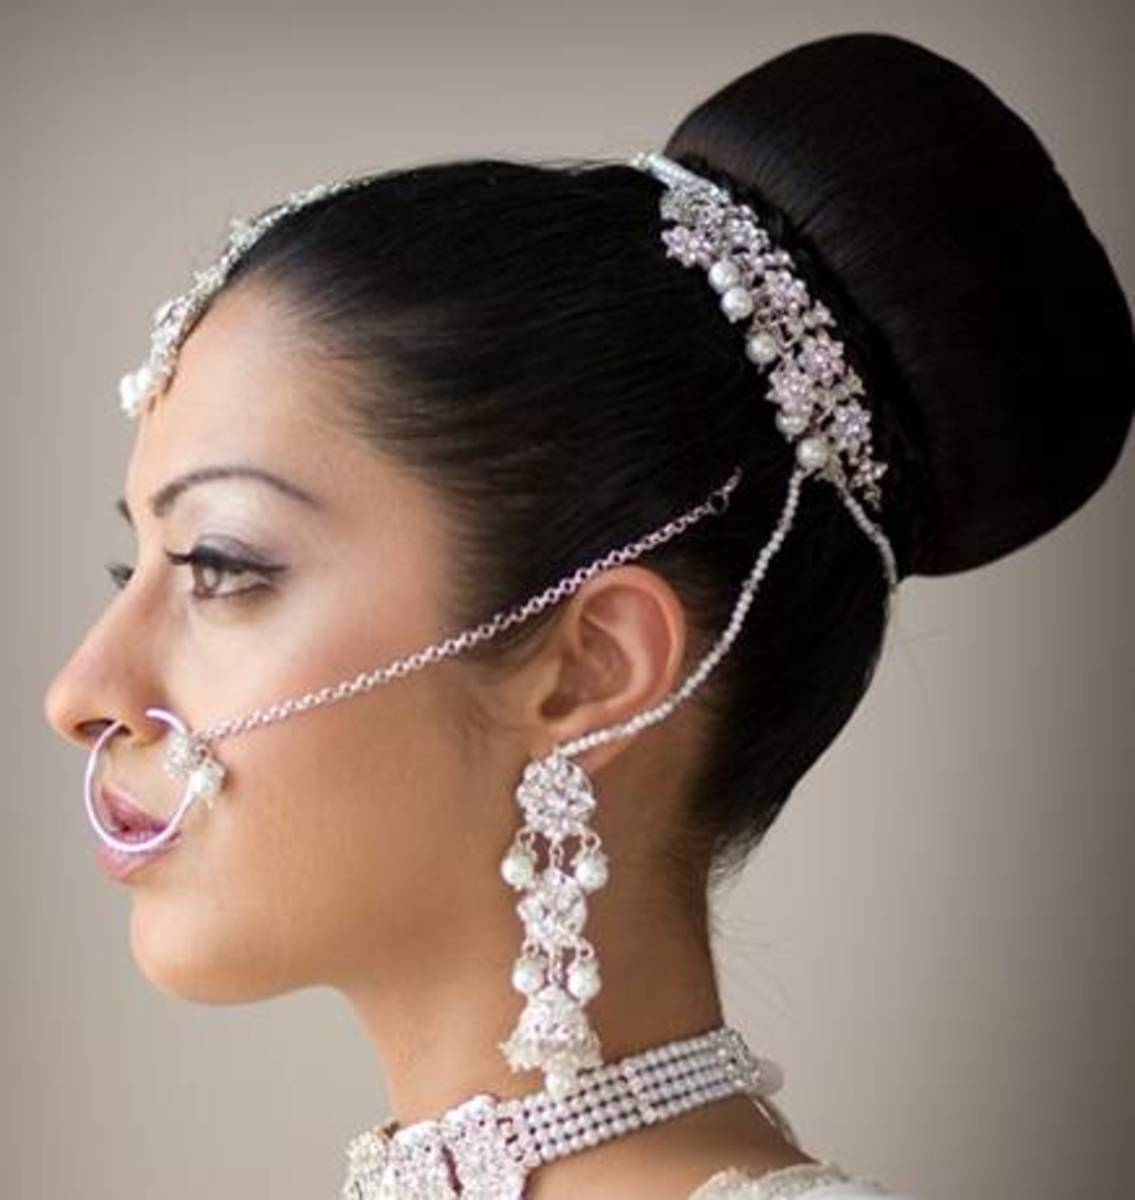 Flat-front hairdo with a big high hair bun for hanging the wedding dupatta.